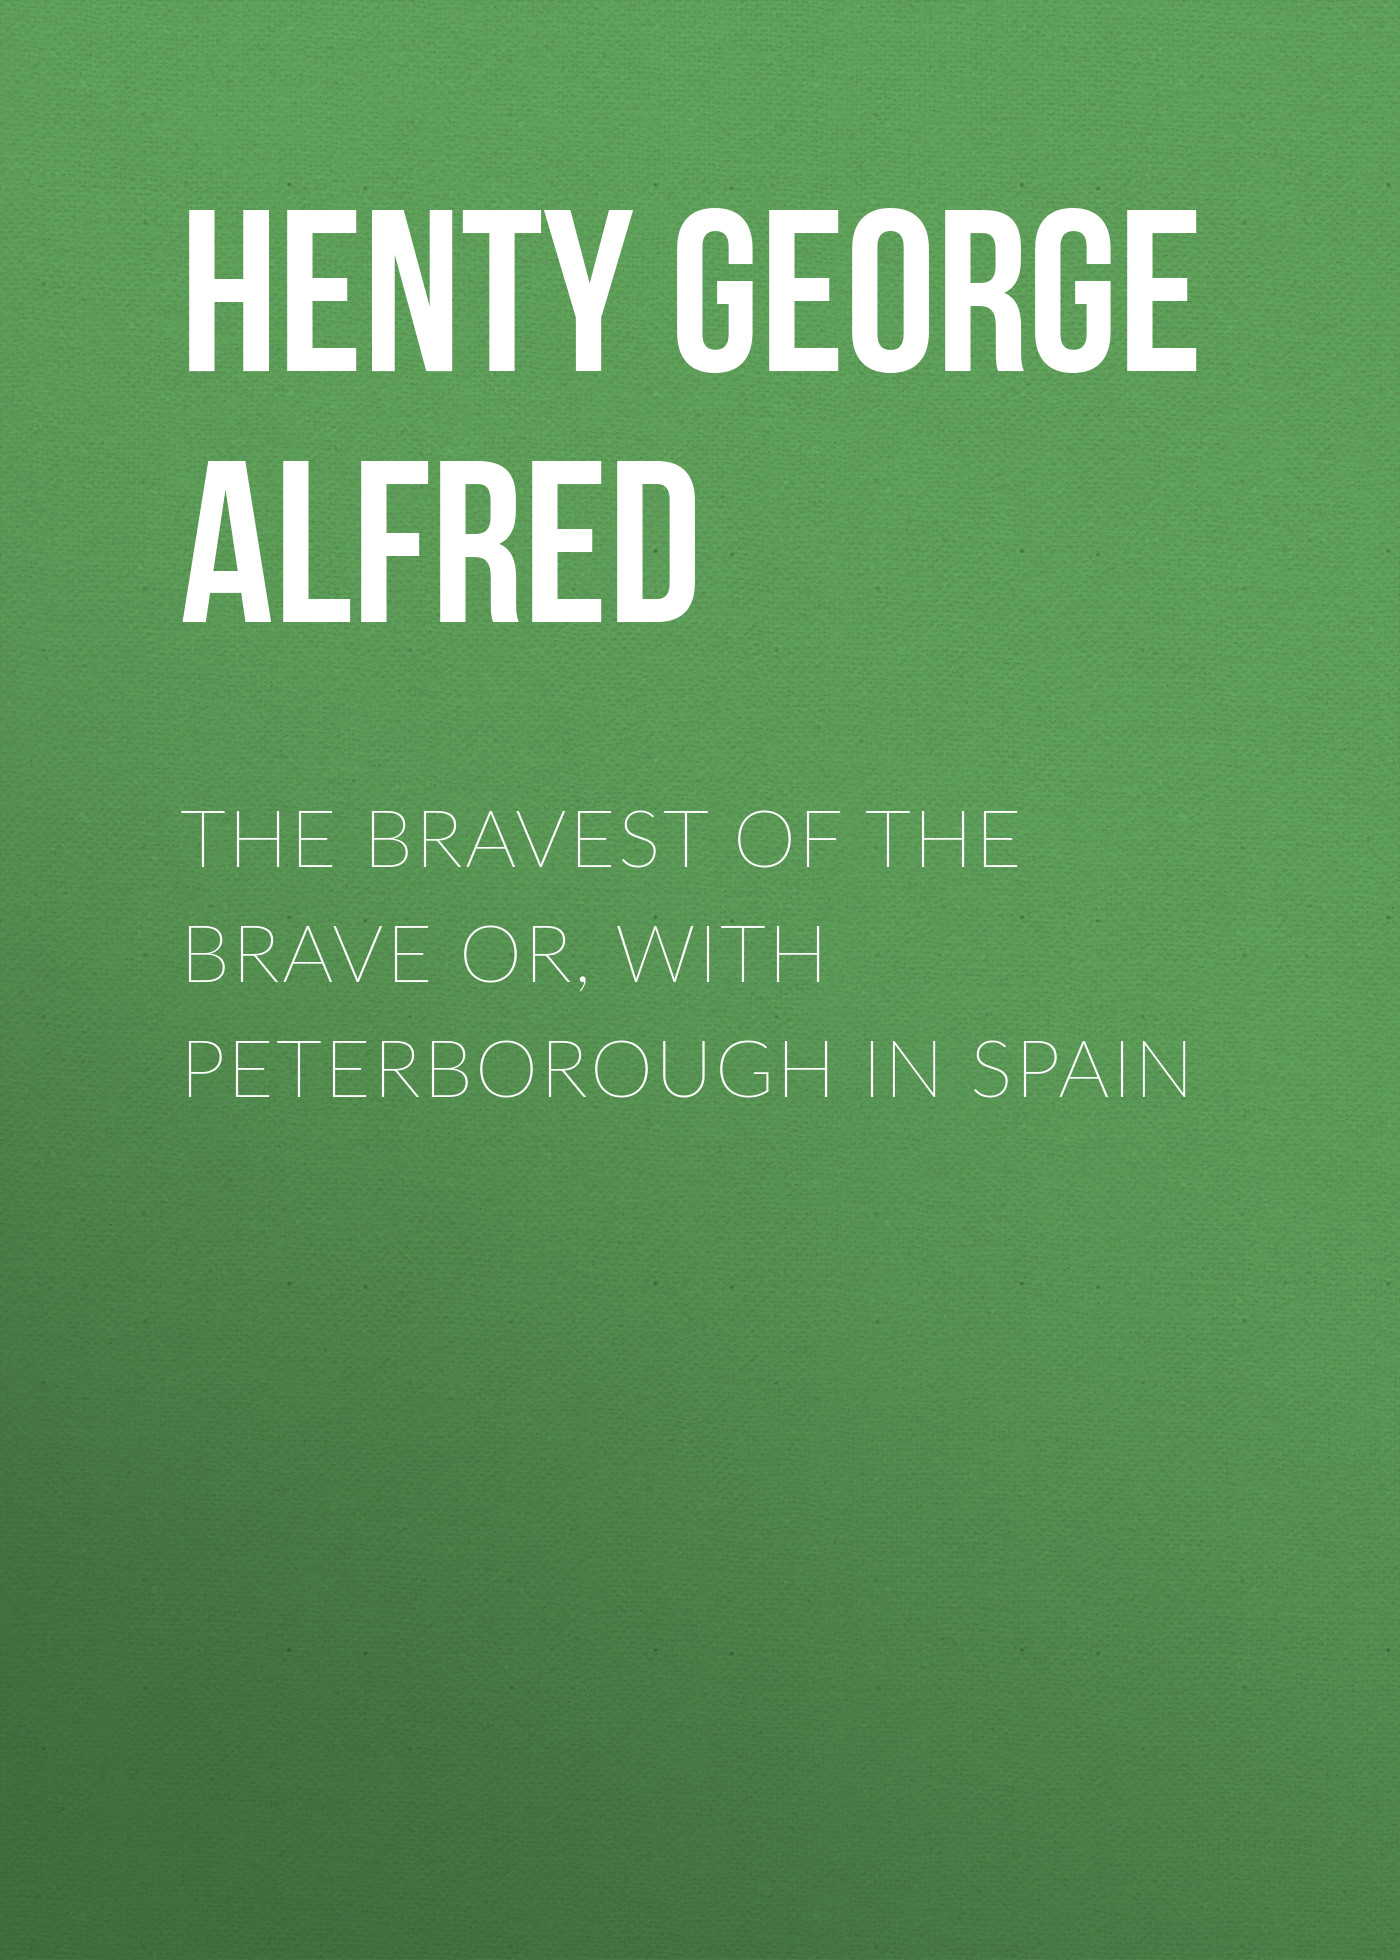 Henty George Alfred The Bravest of the Brave or, with Peterborough in Spain